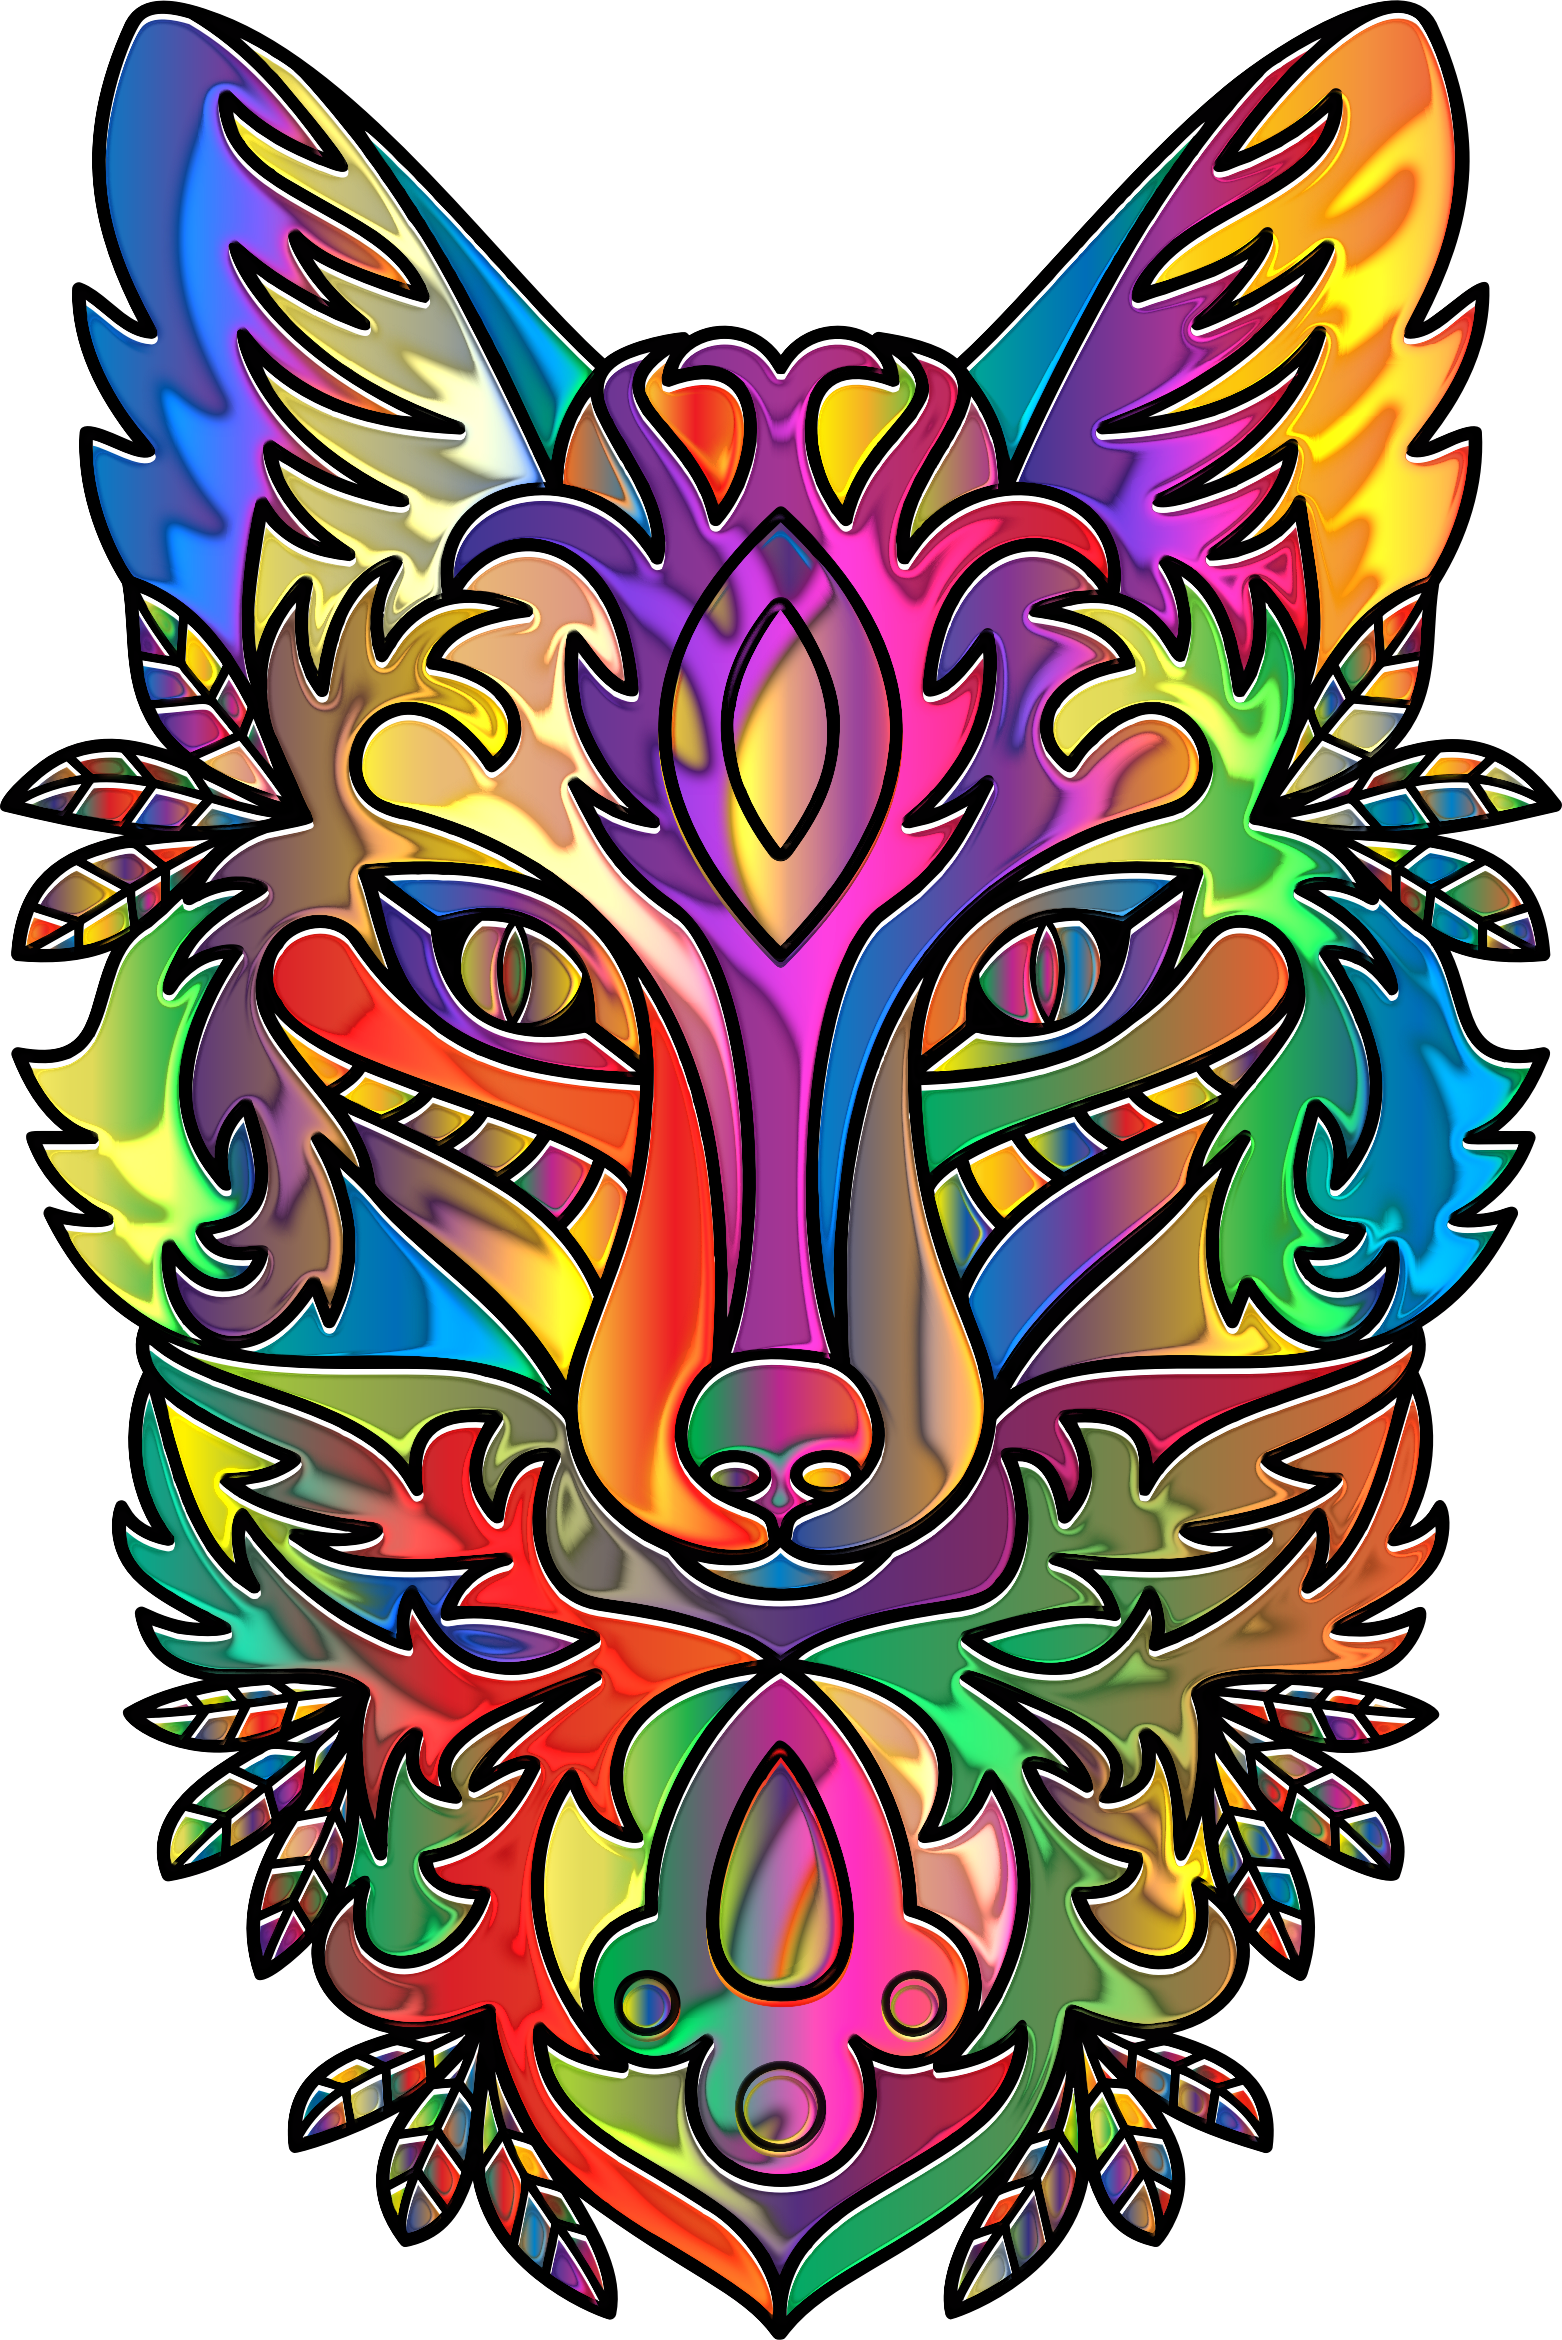 Prismatic Ornamental Fox Line Art Enhanced by GDJ